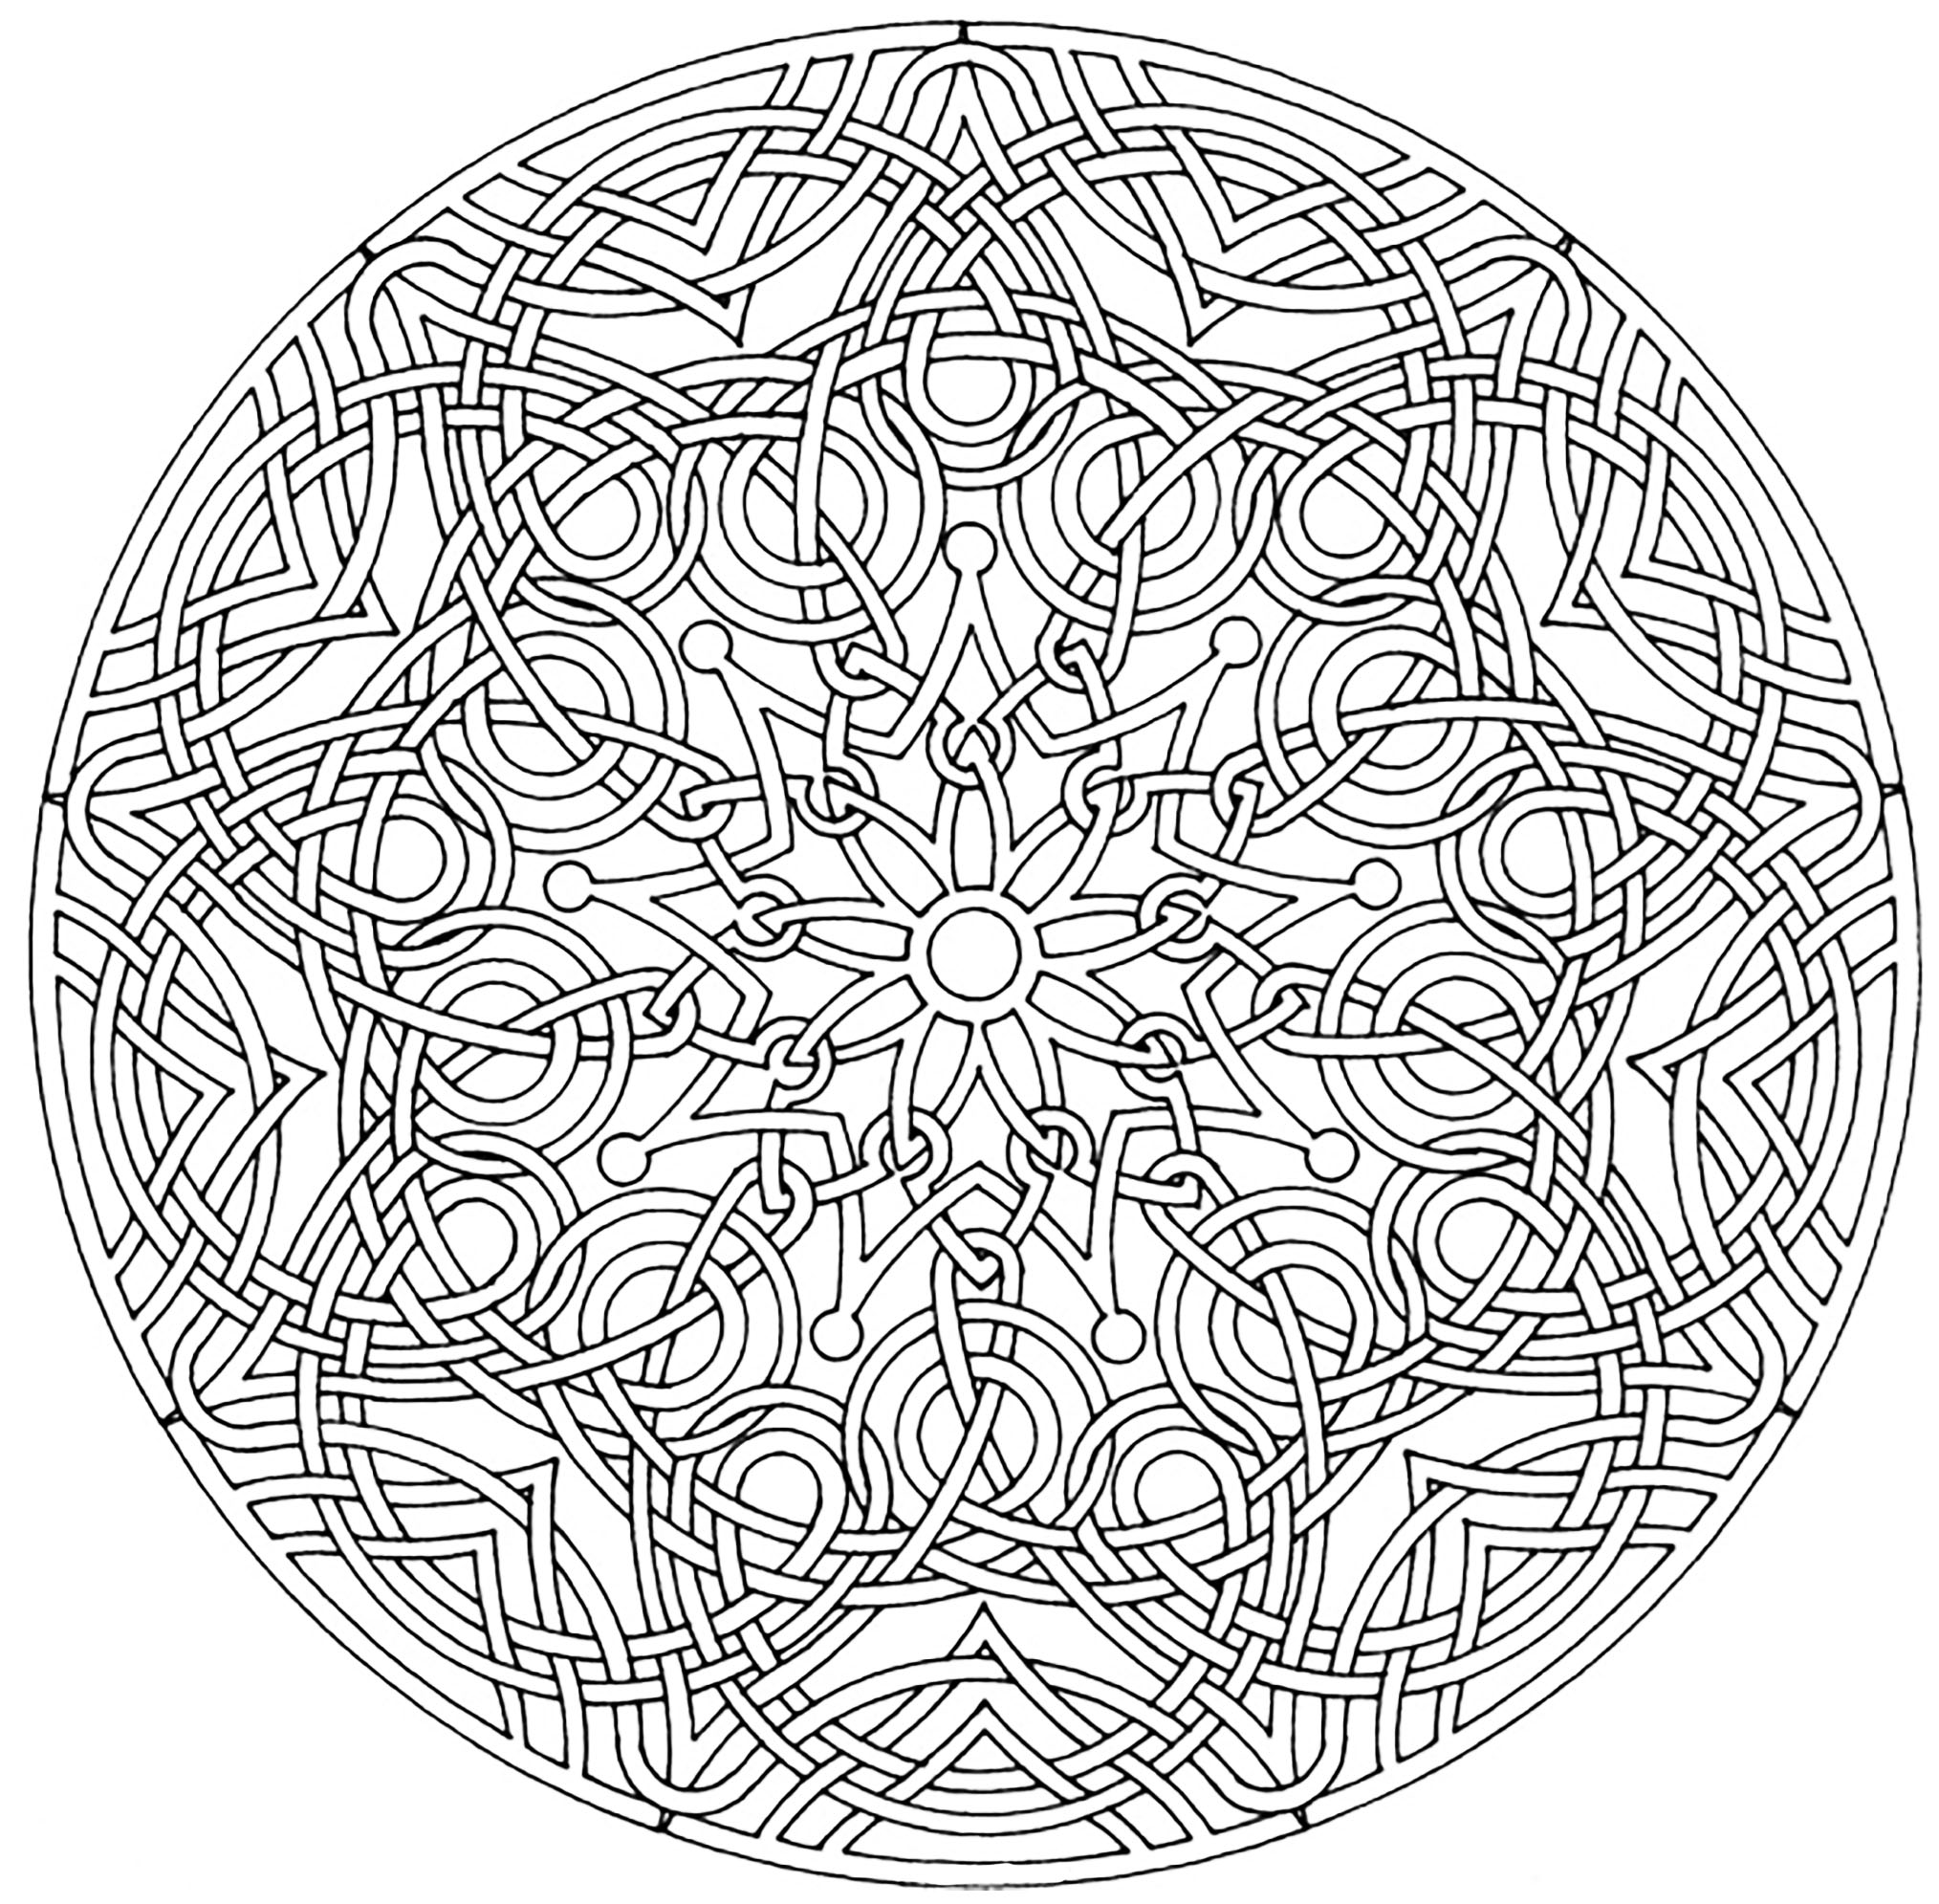 Mandalas coloring pages for adults coloring page for Mandala coloring pages printable free